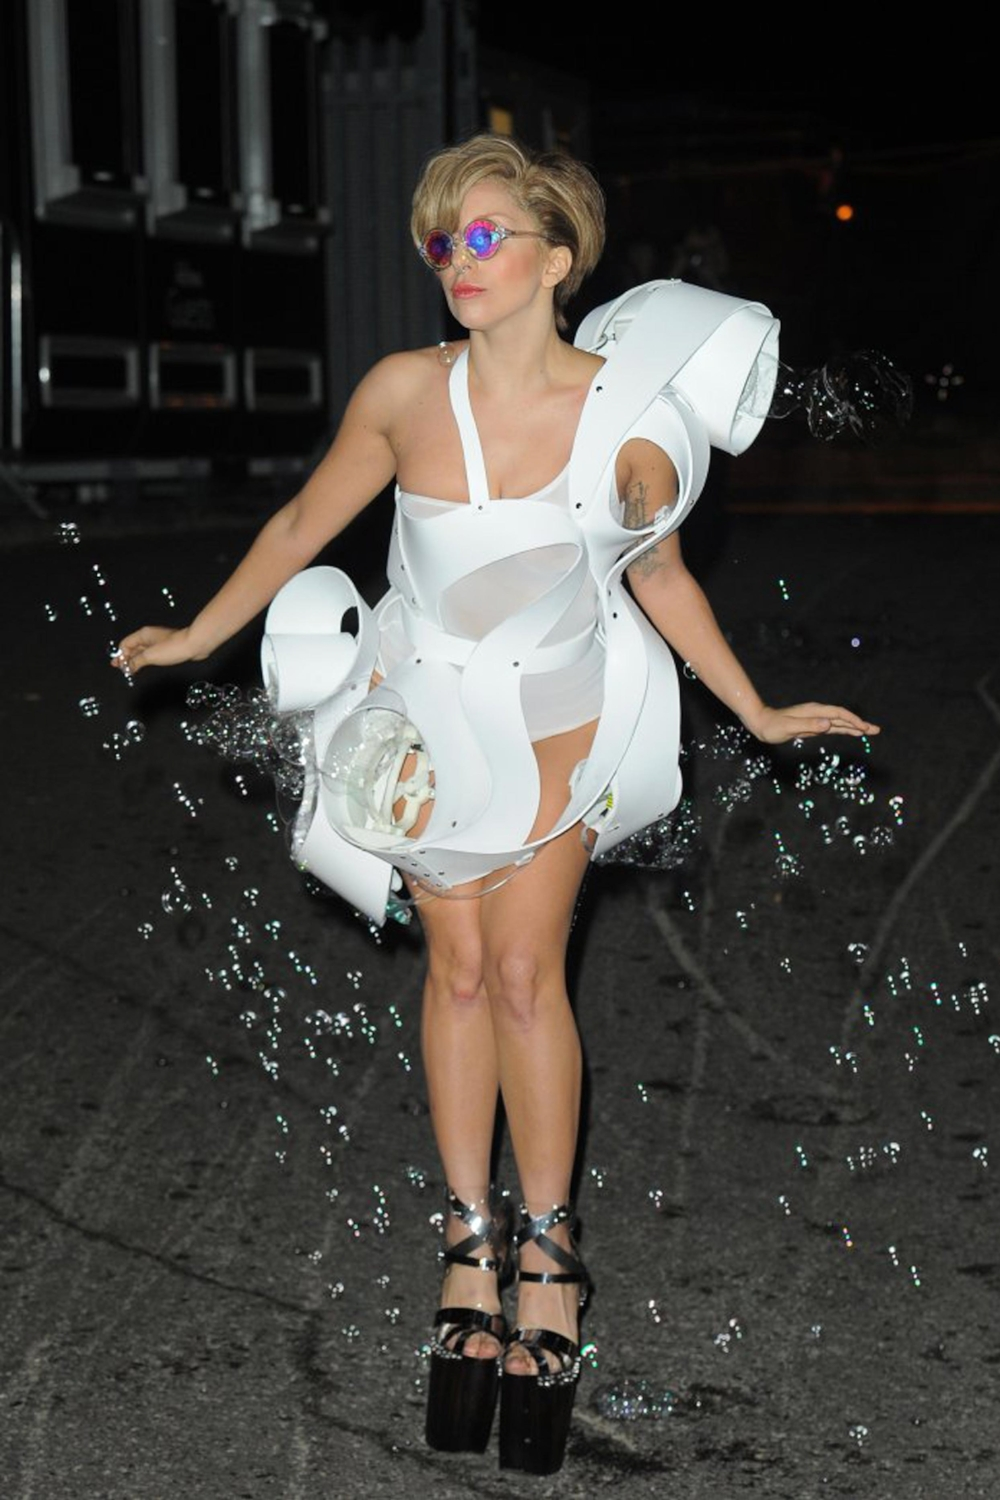 Singer Lady Gaga, wearing 3D printing Anemone dress, 1st September, 2013, in London